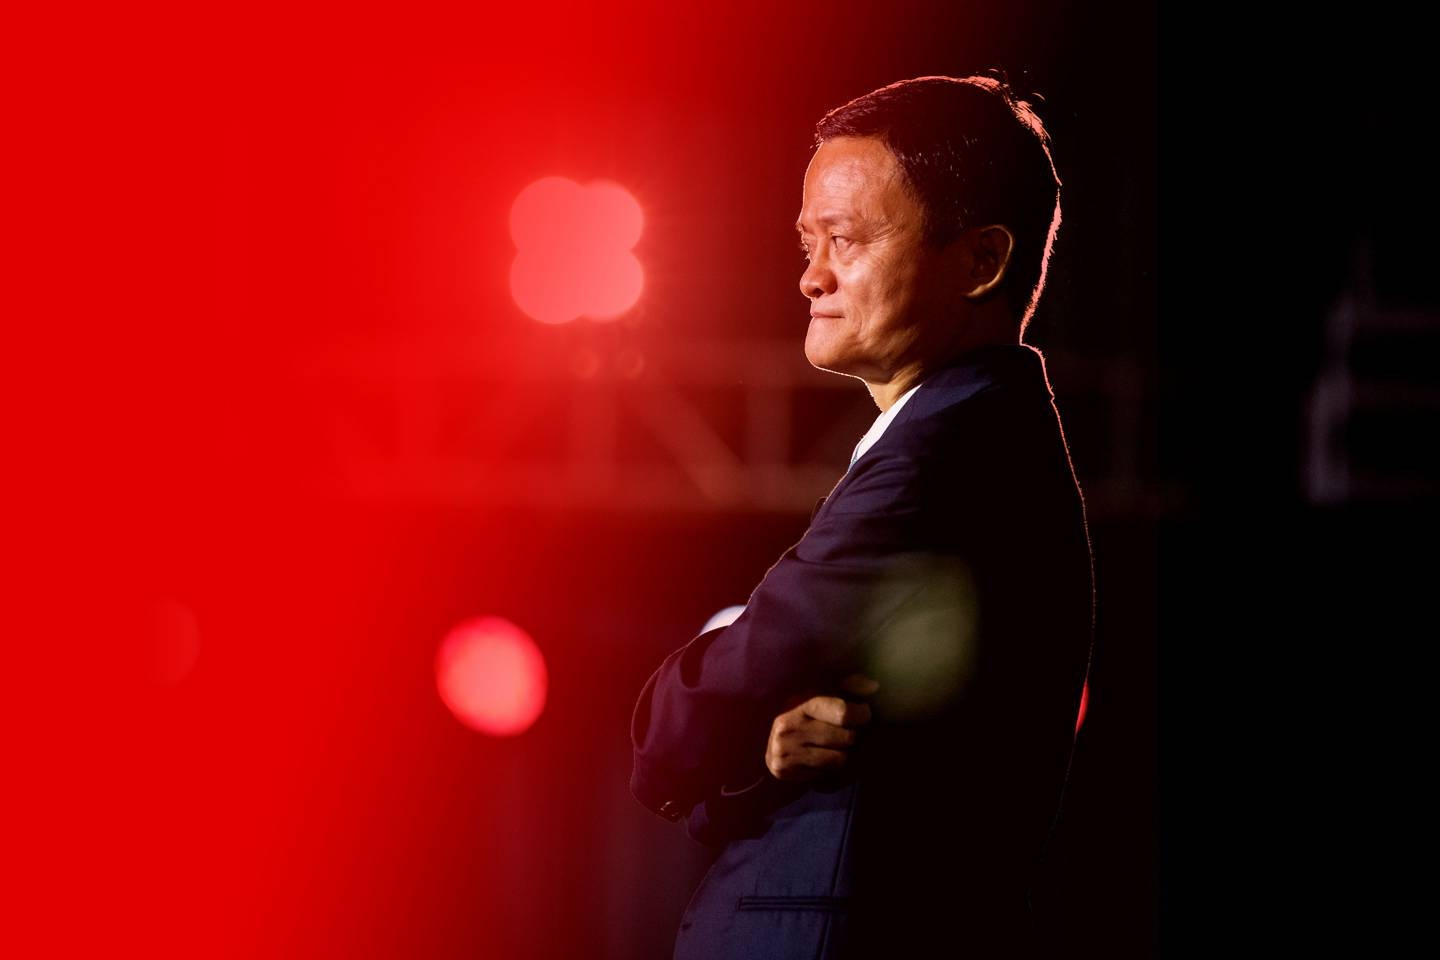 The Most Vocal Billionaire in China is Still Missing